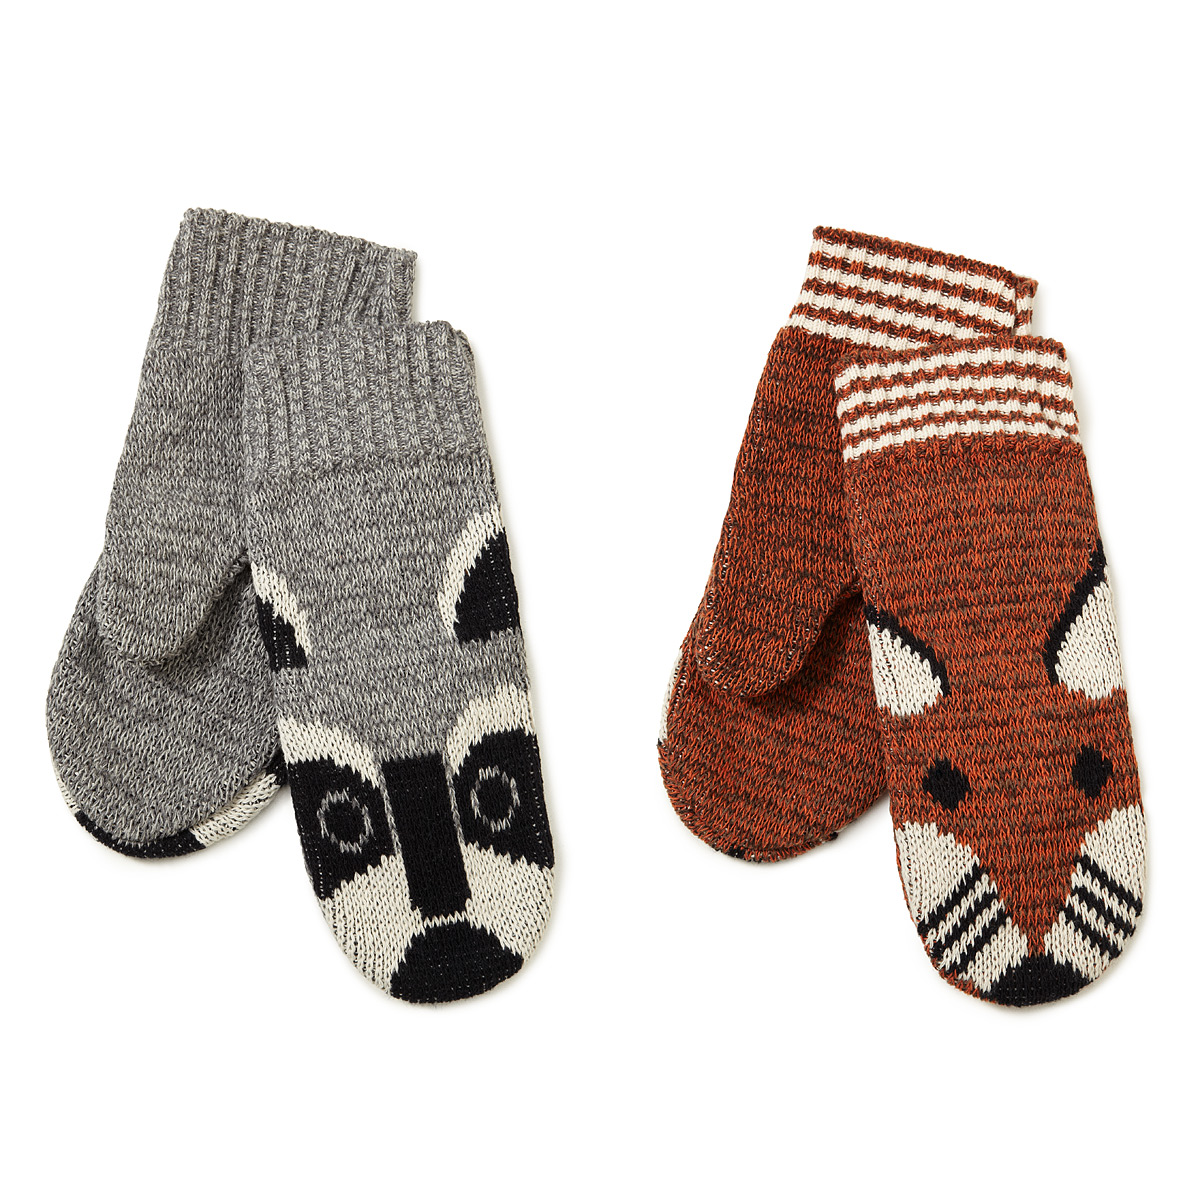 DIY Style: Knitted Mittens advise